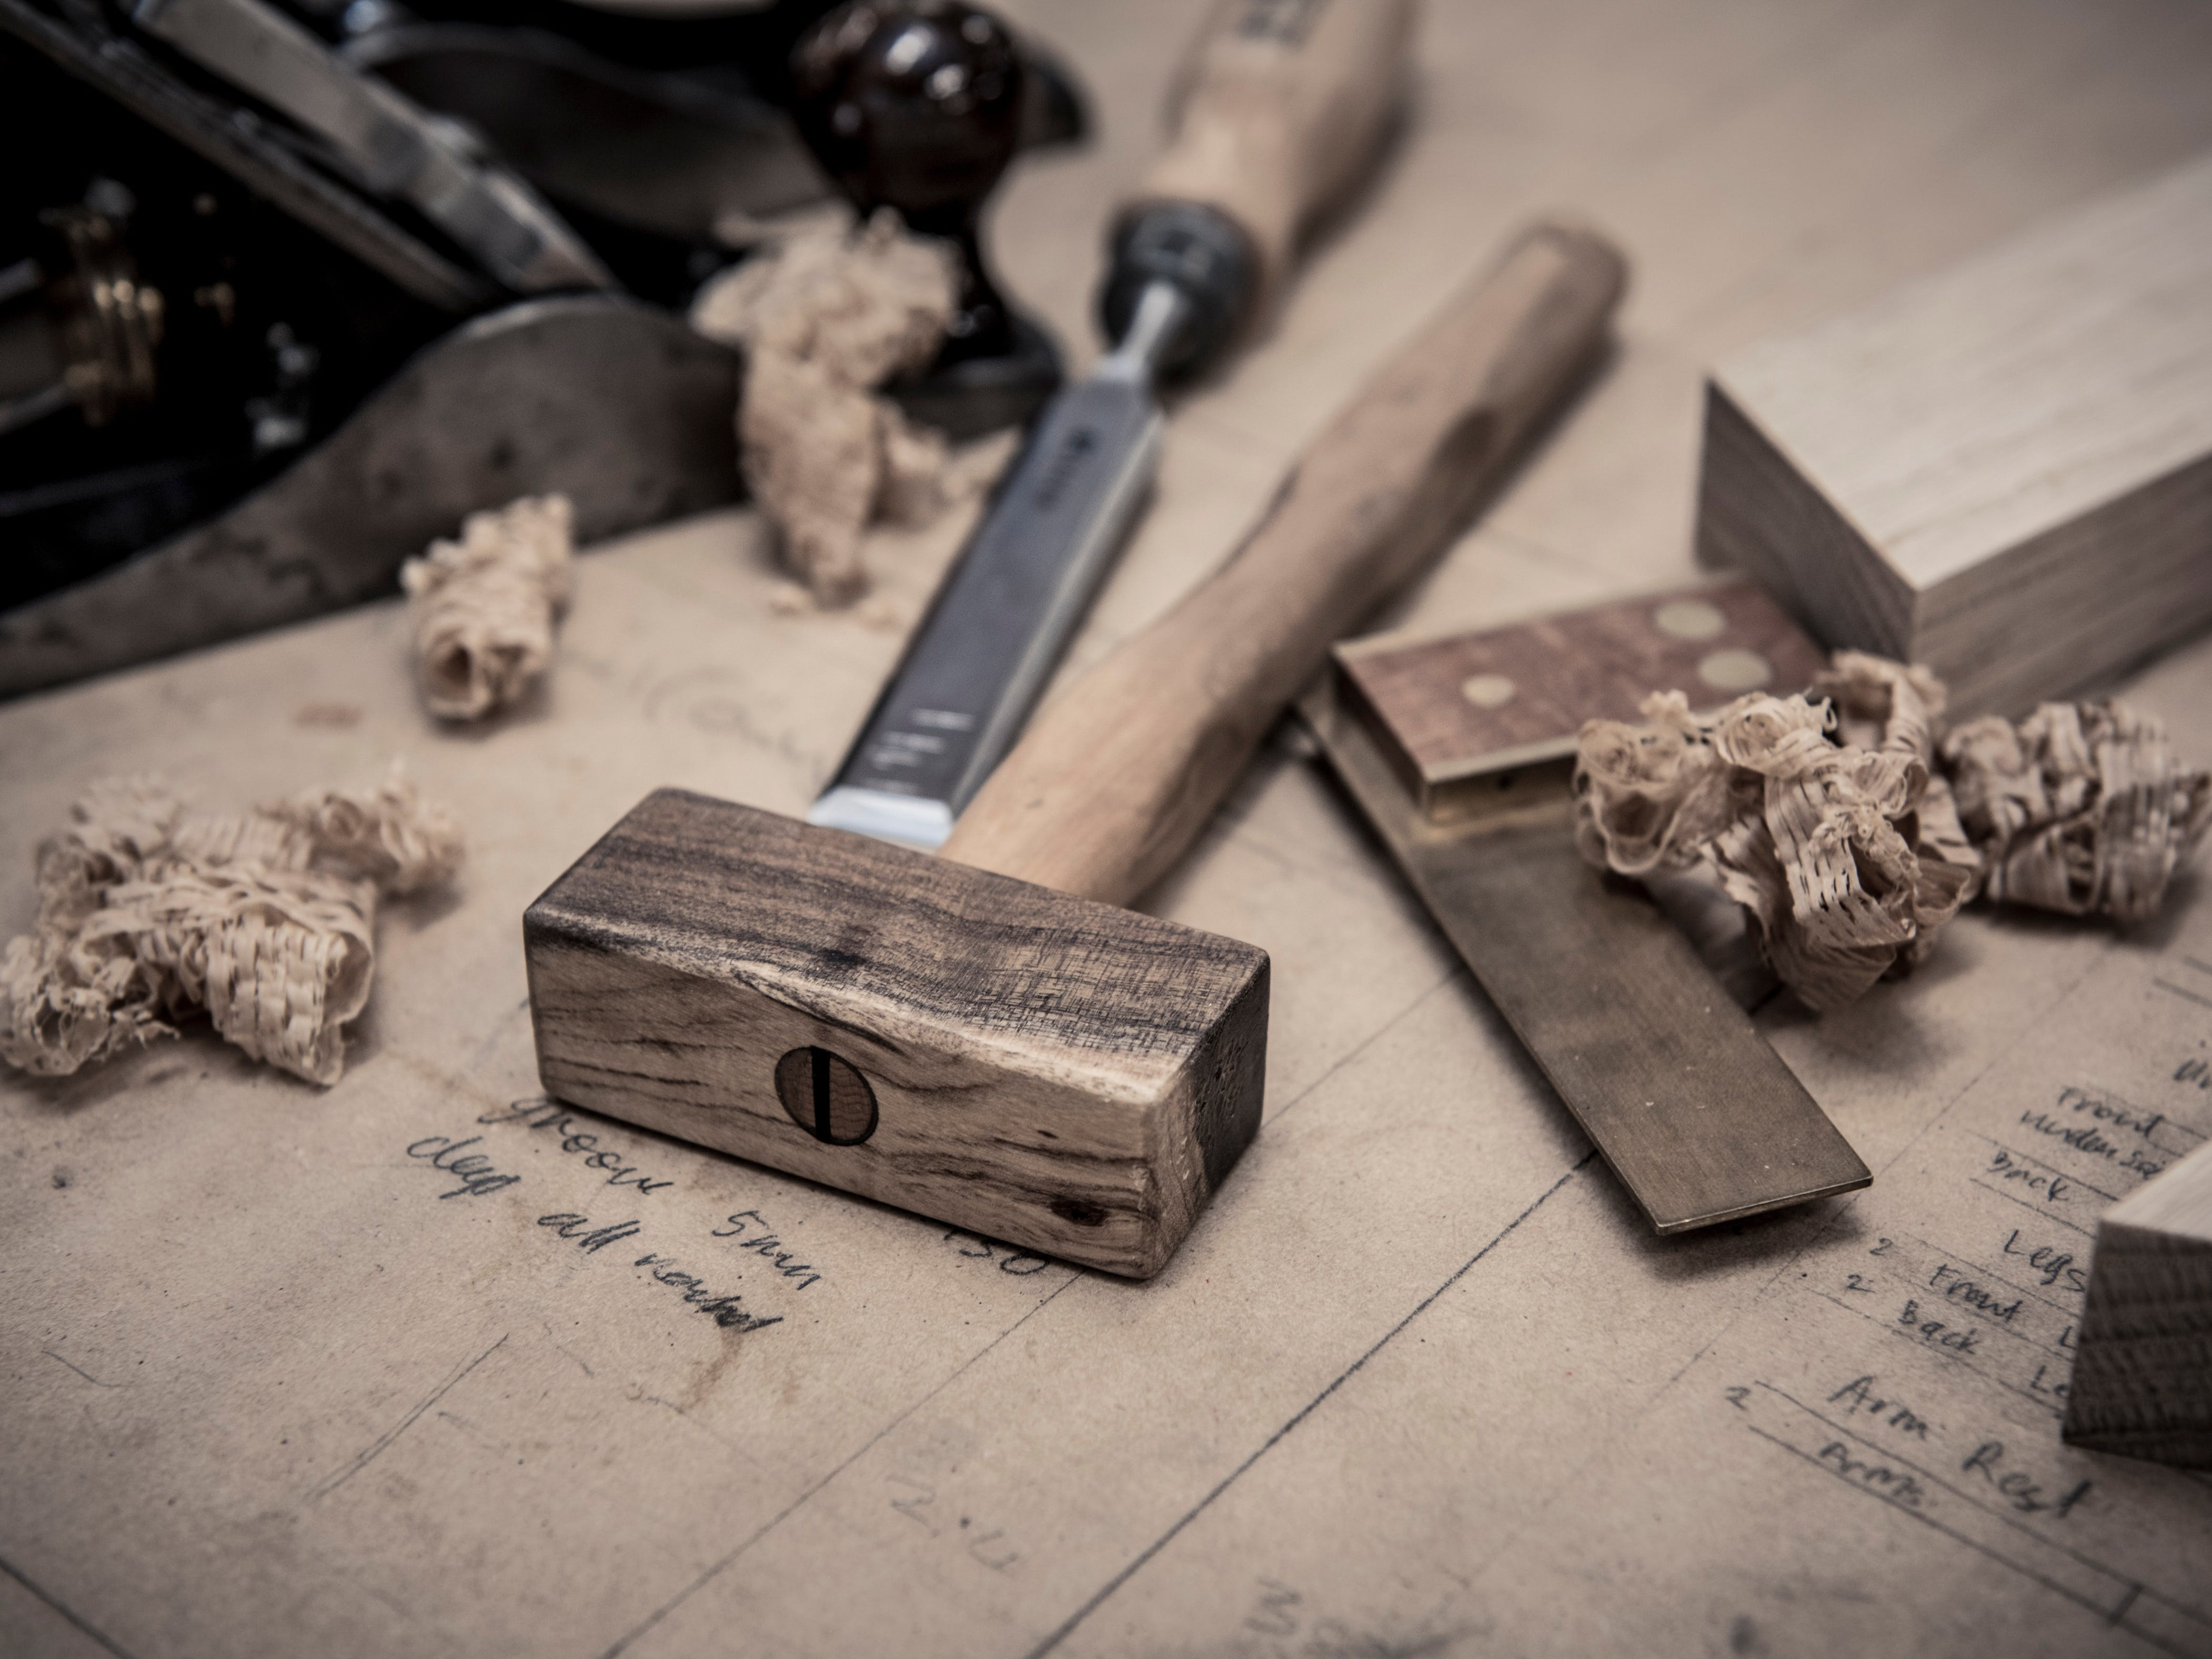 A Home of Makers - Sturt School for Wood